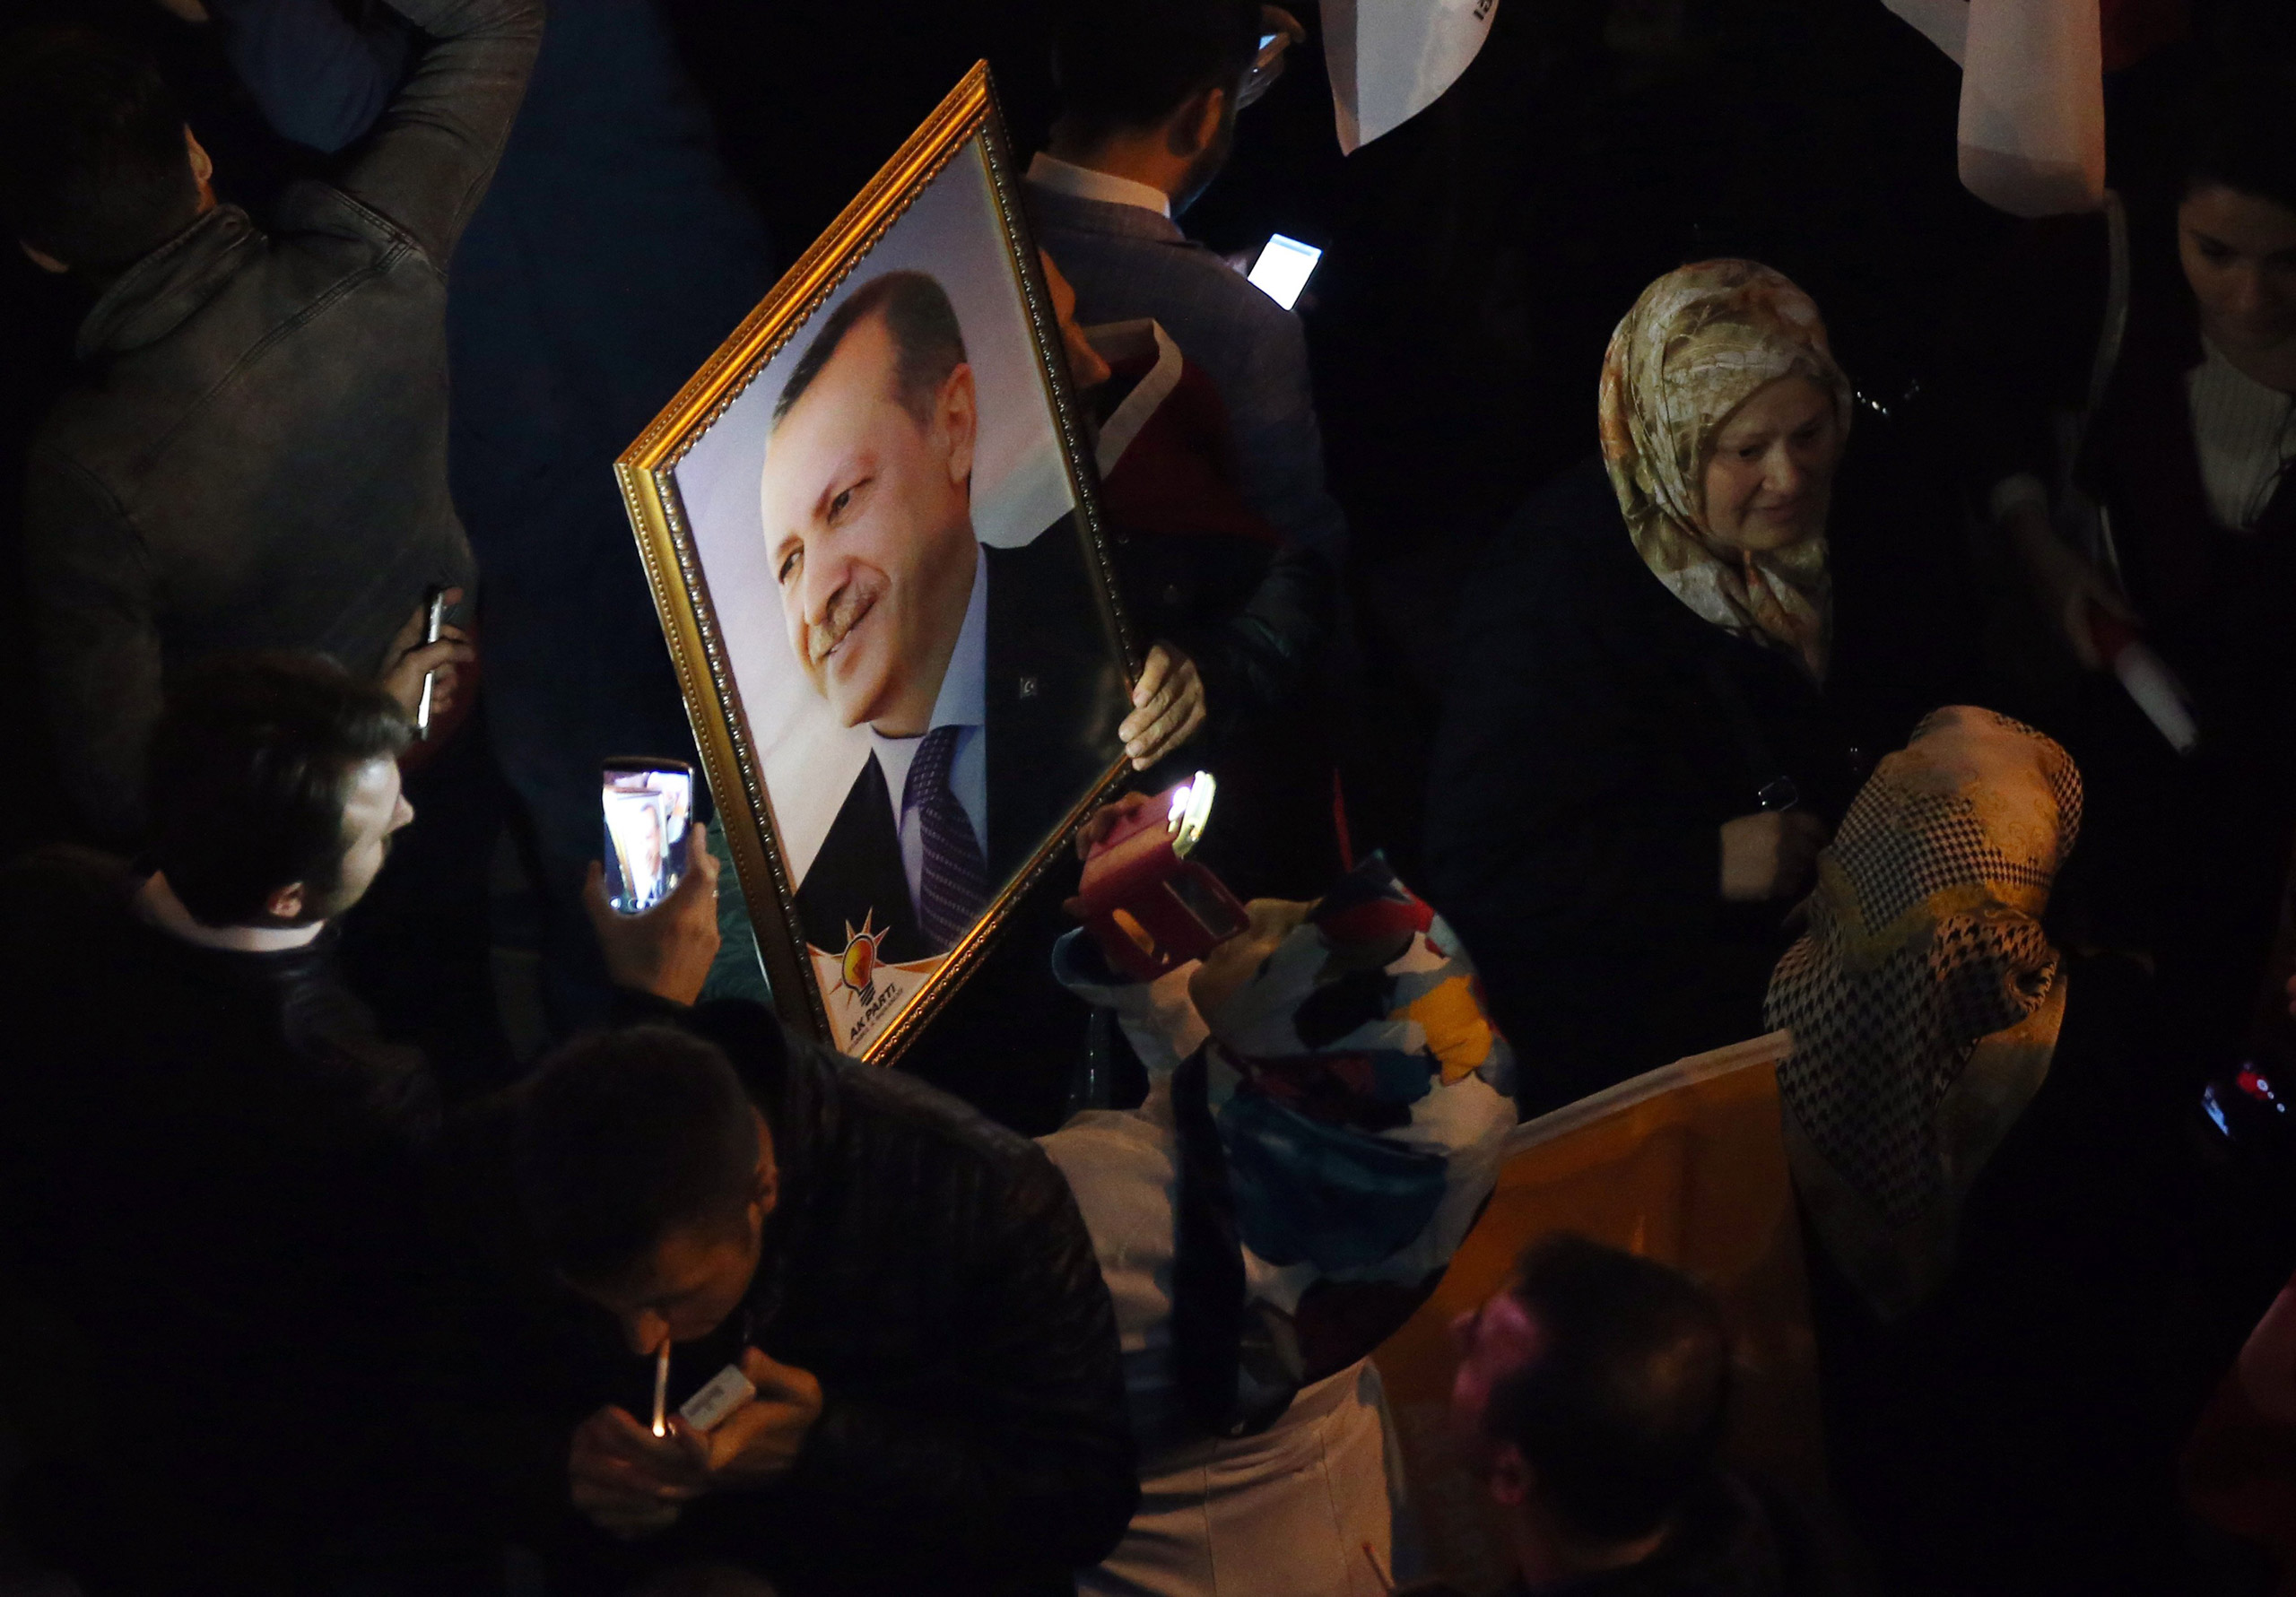 Supporters of the Justice and Development Party, (AKP), hold a portrait of Turkey's President Recep Tayyip Erdogan as they celebrate in front the AKP headquarters in Istanbul, on Nov. 1, 2015.